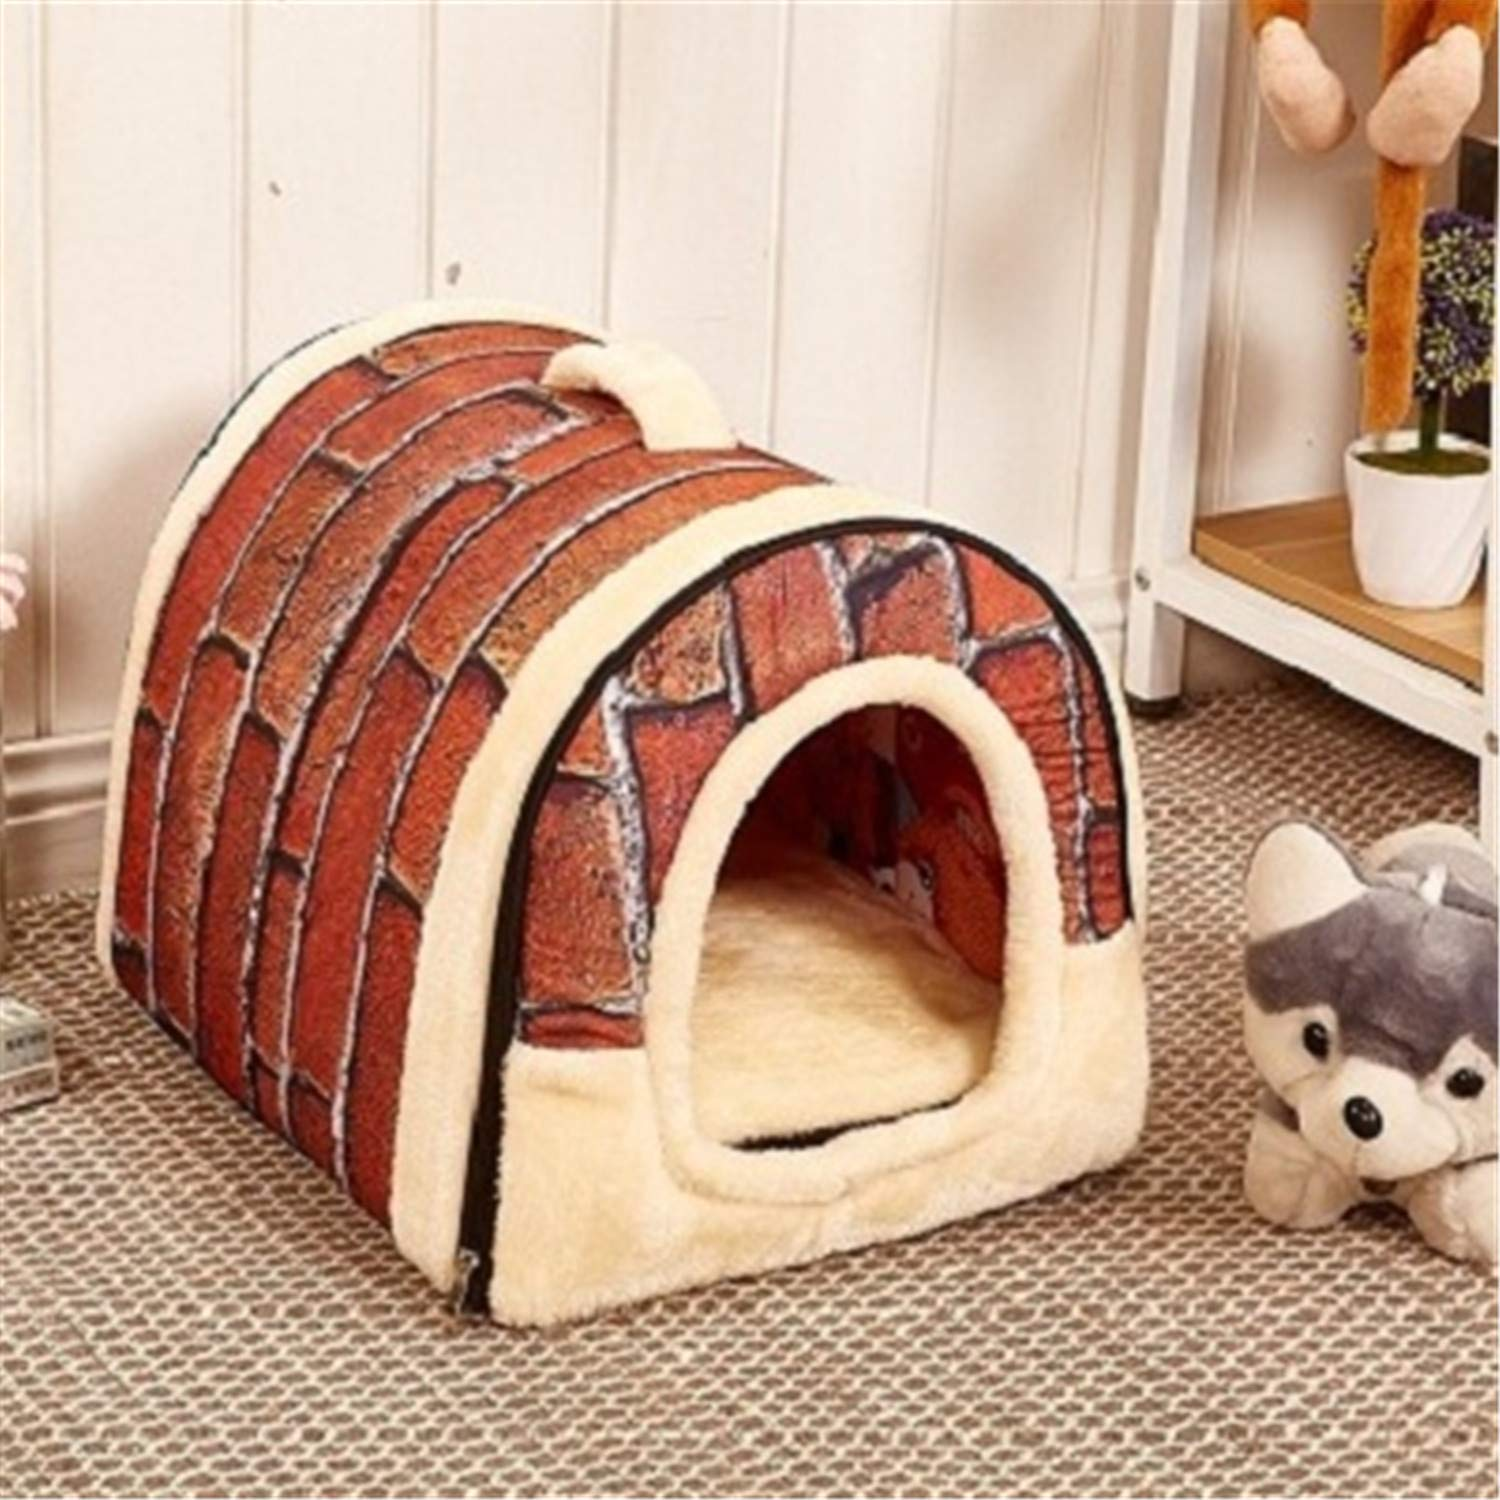 As The Picture L As The Picture L Pet Dog House Nest with Mat Foldable Pet Dog Bed Cat Bed House for Small Medium Dogs Travel Kennels for Cats Pet Products